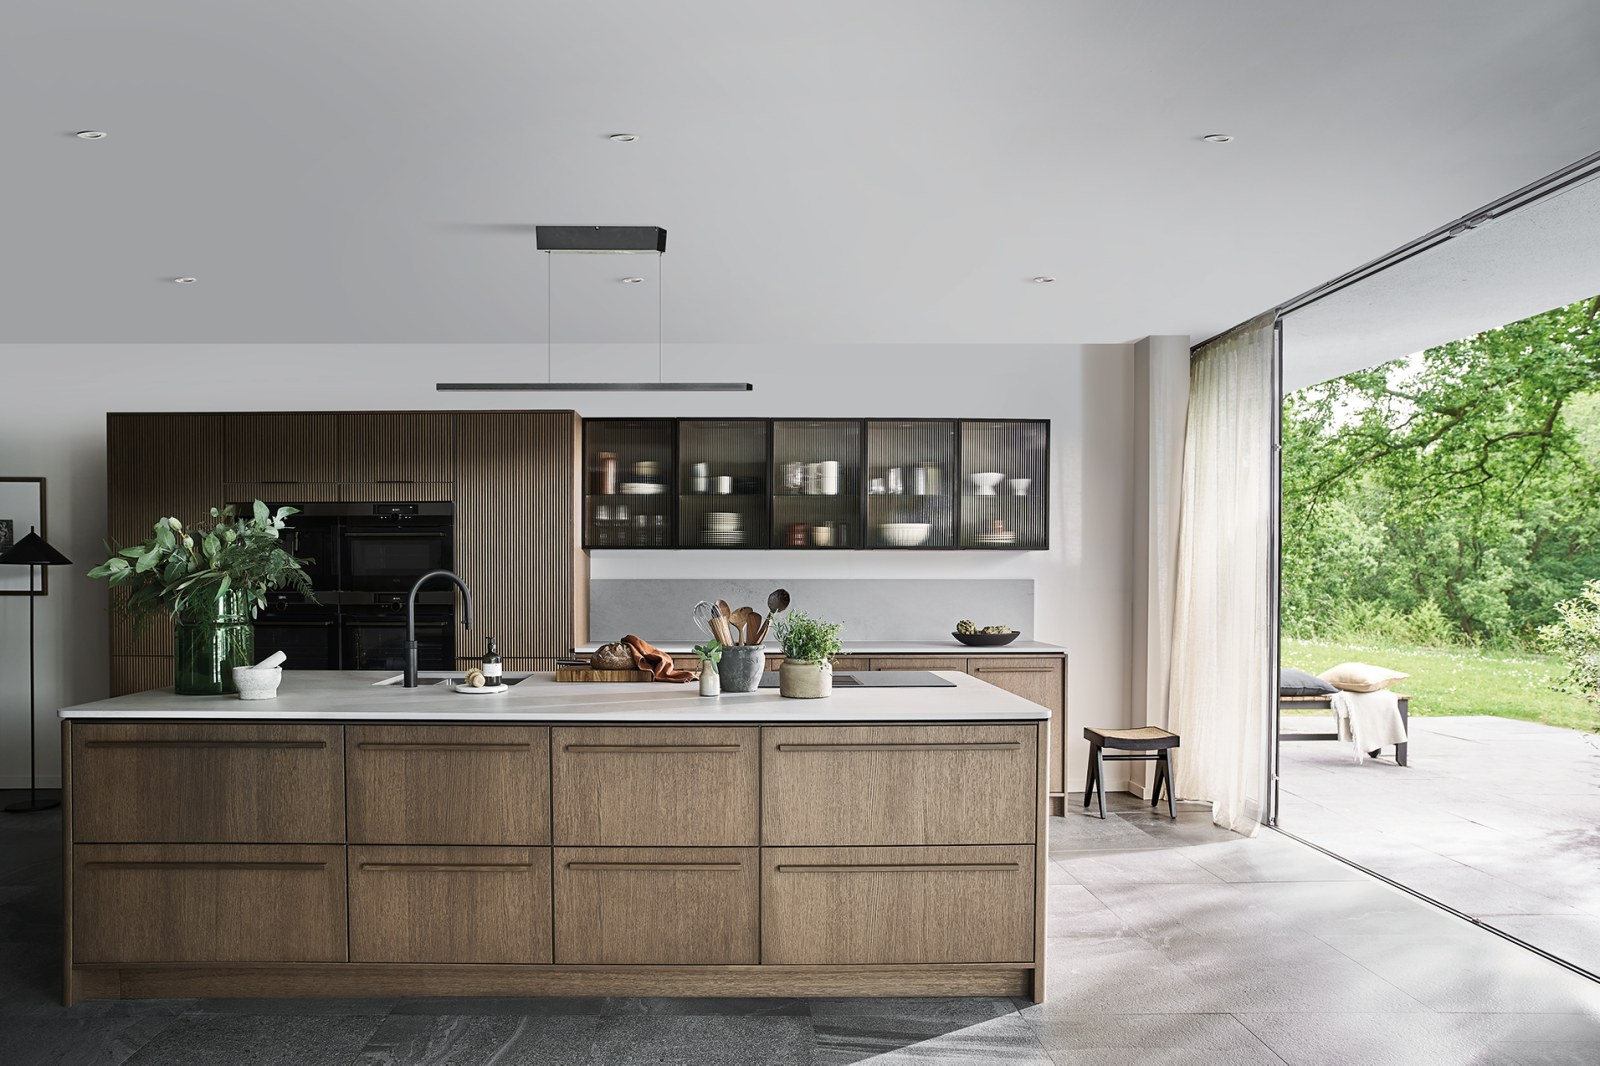 Magnet Kitchens 2021 Nordic Nature range with Fluted oak cabinets with Dekton Aeri worktop. Floating island with boiling hot water tap.